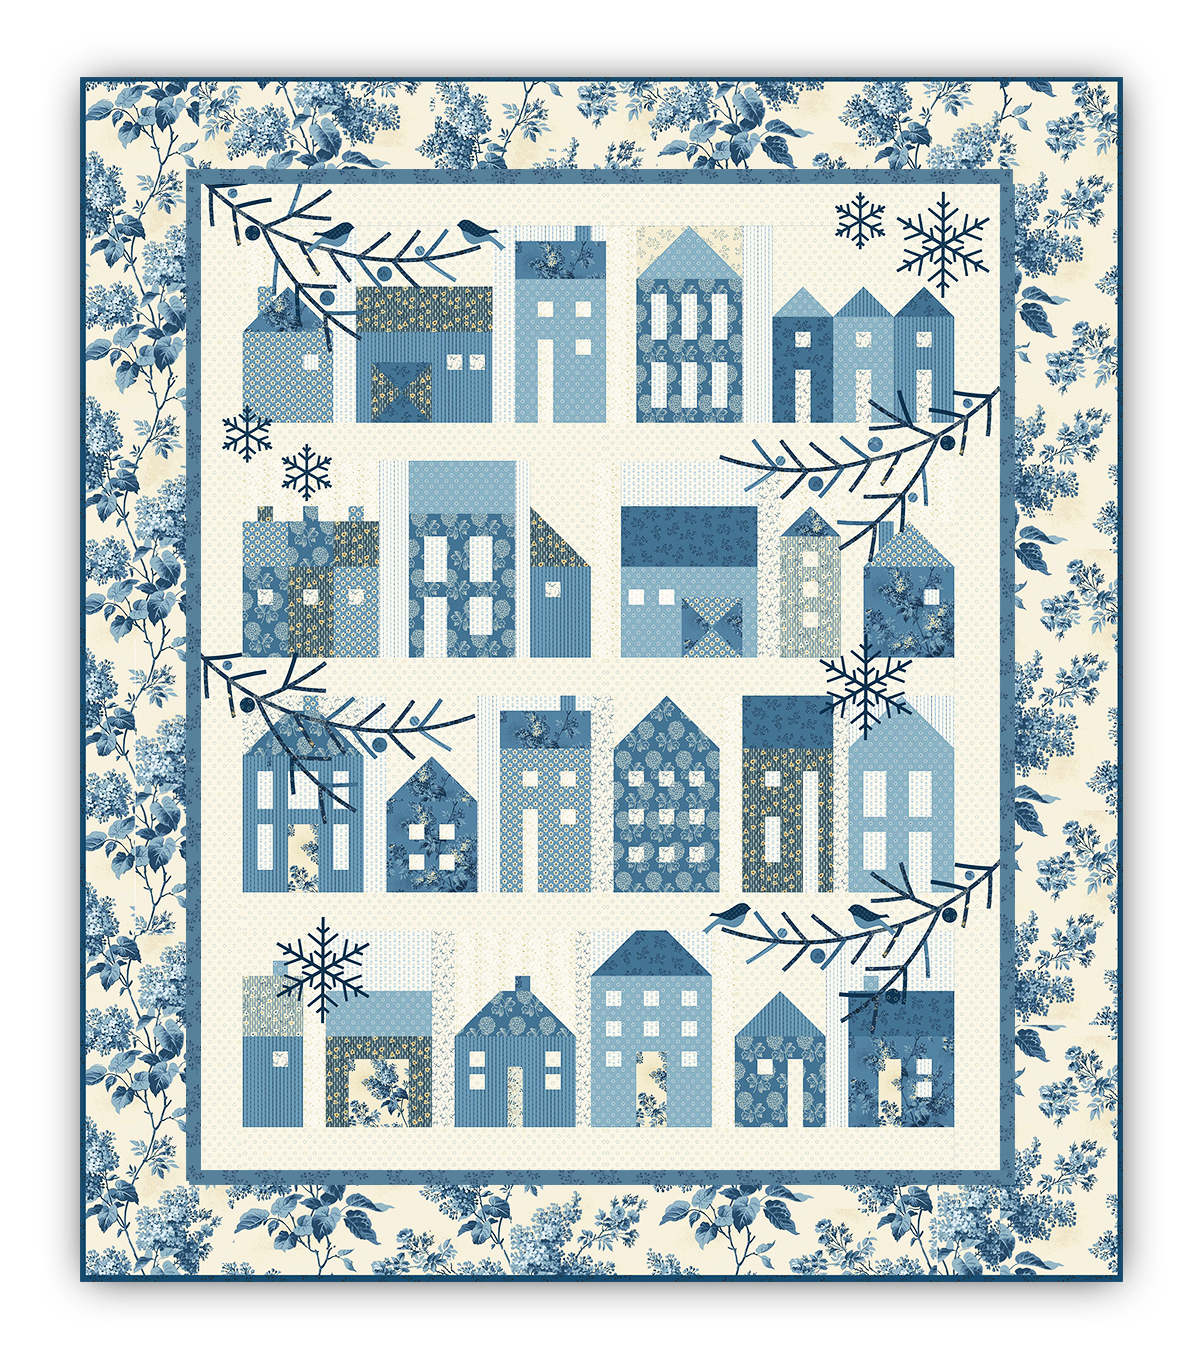 Winter Village Block of the Month with by Edyta Sitar - Optional ... : village quilts - Adamdwight.com